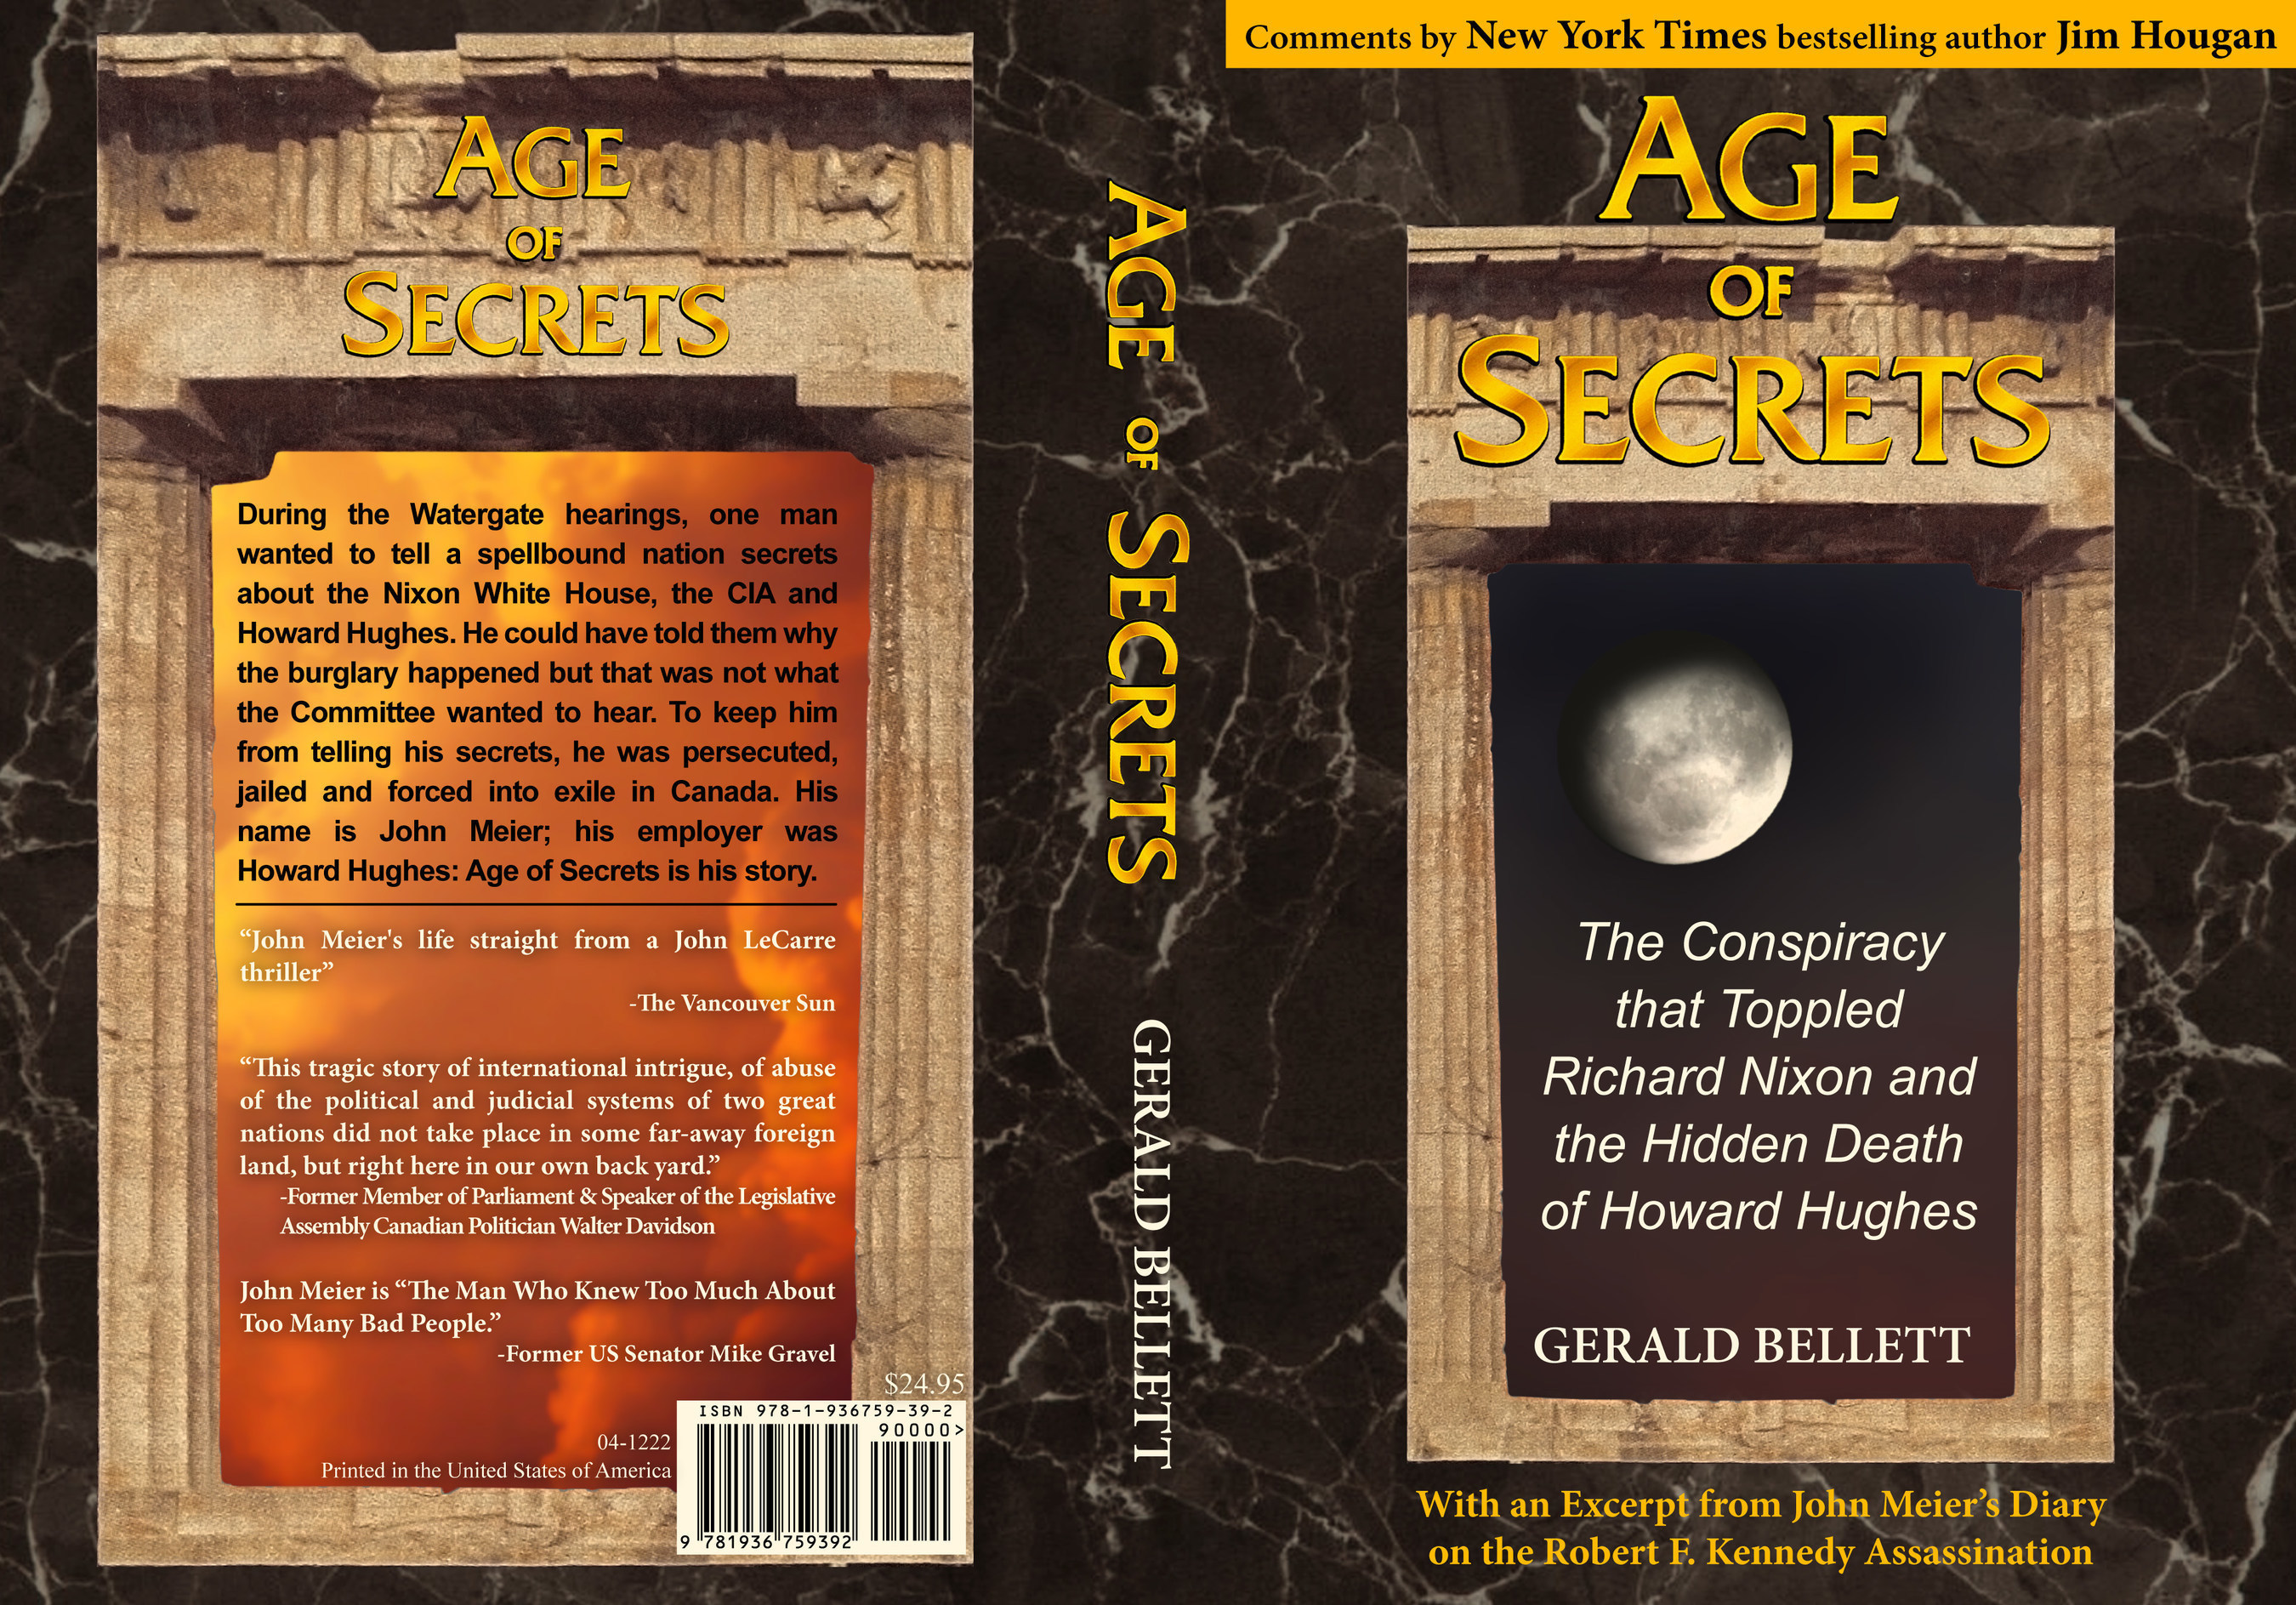 New Release: Age of Secrets - the Conspiracy That Toppled Richard Nixon and the Hidden Death of